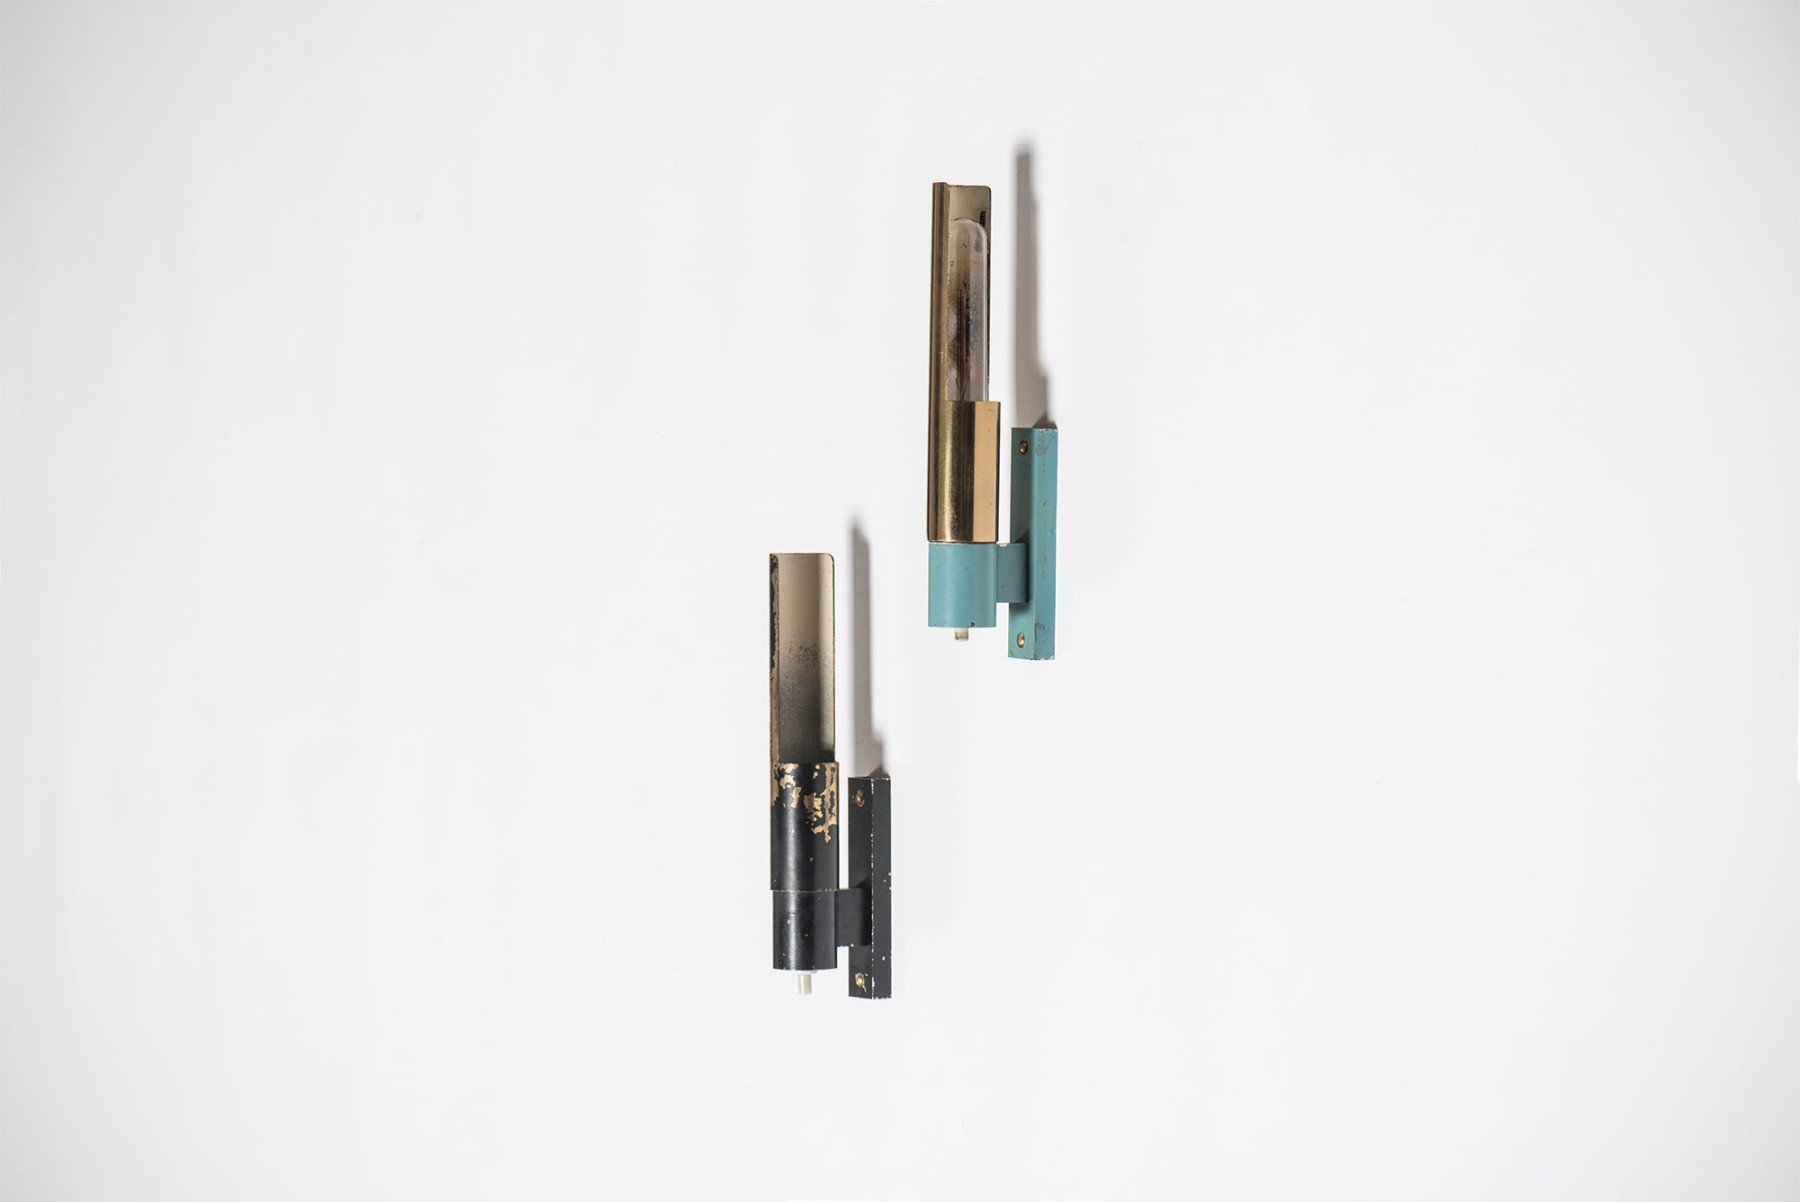 Gino Sarfatti |   Wall light, model 211 - pair